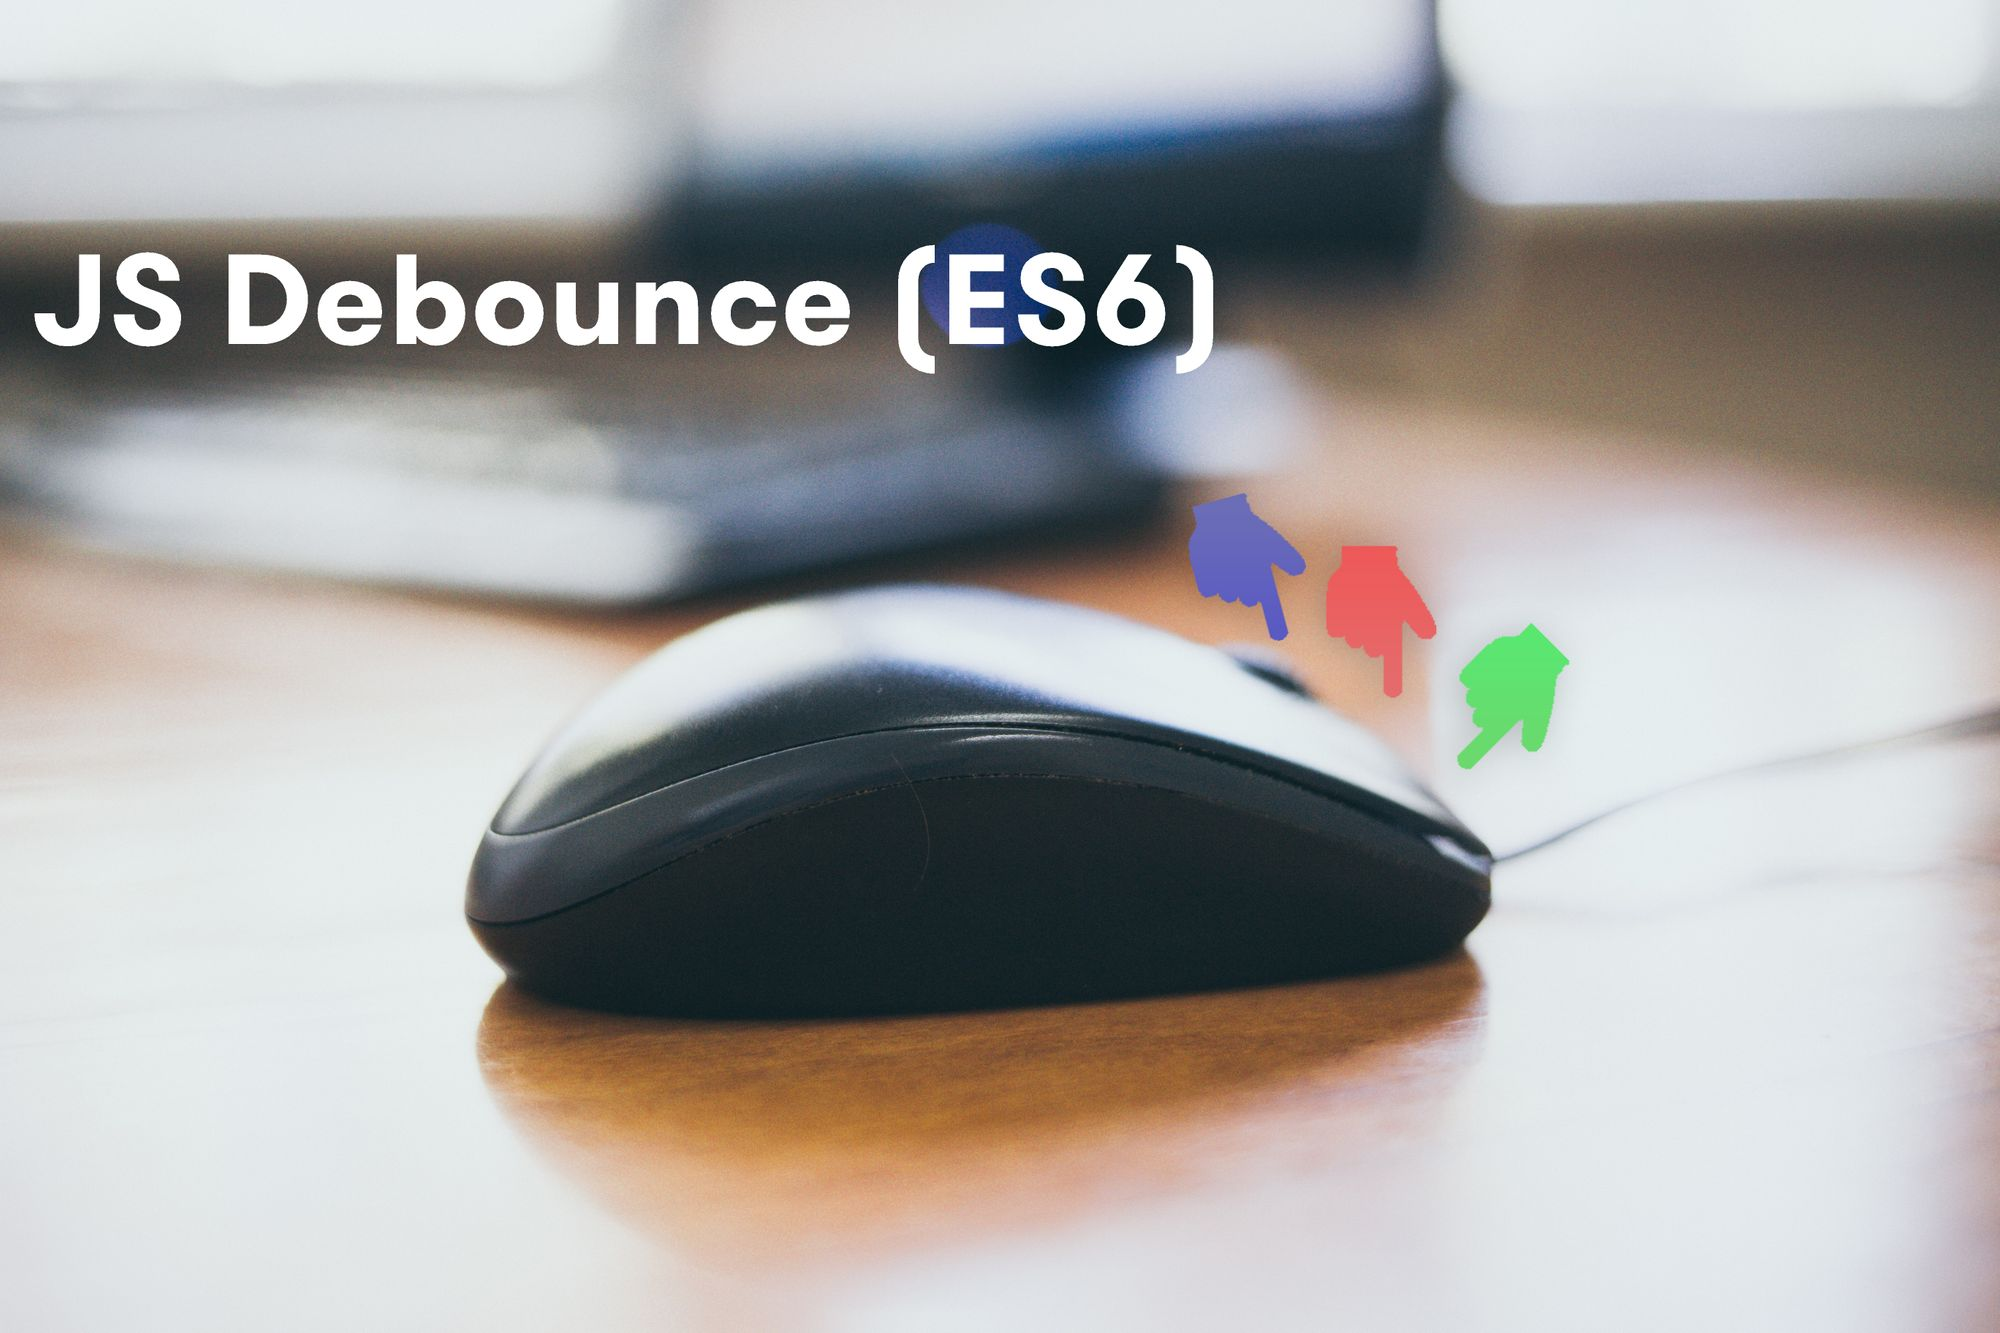 JavaScript Debounce Example – How to Delay a Function in JS (ES6)